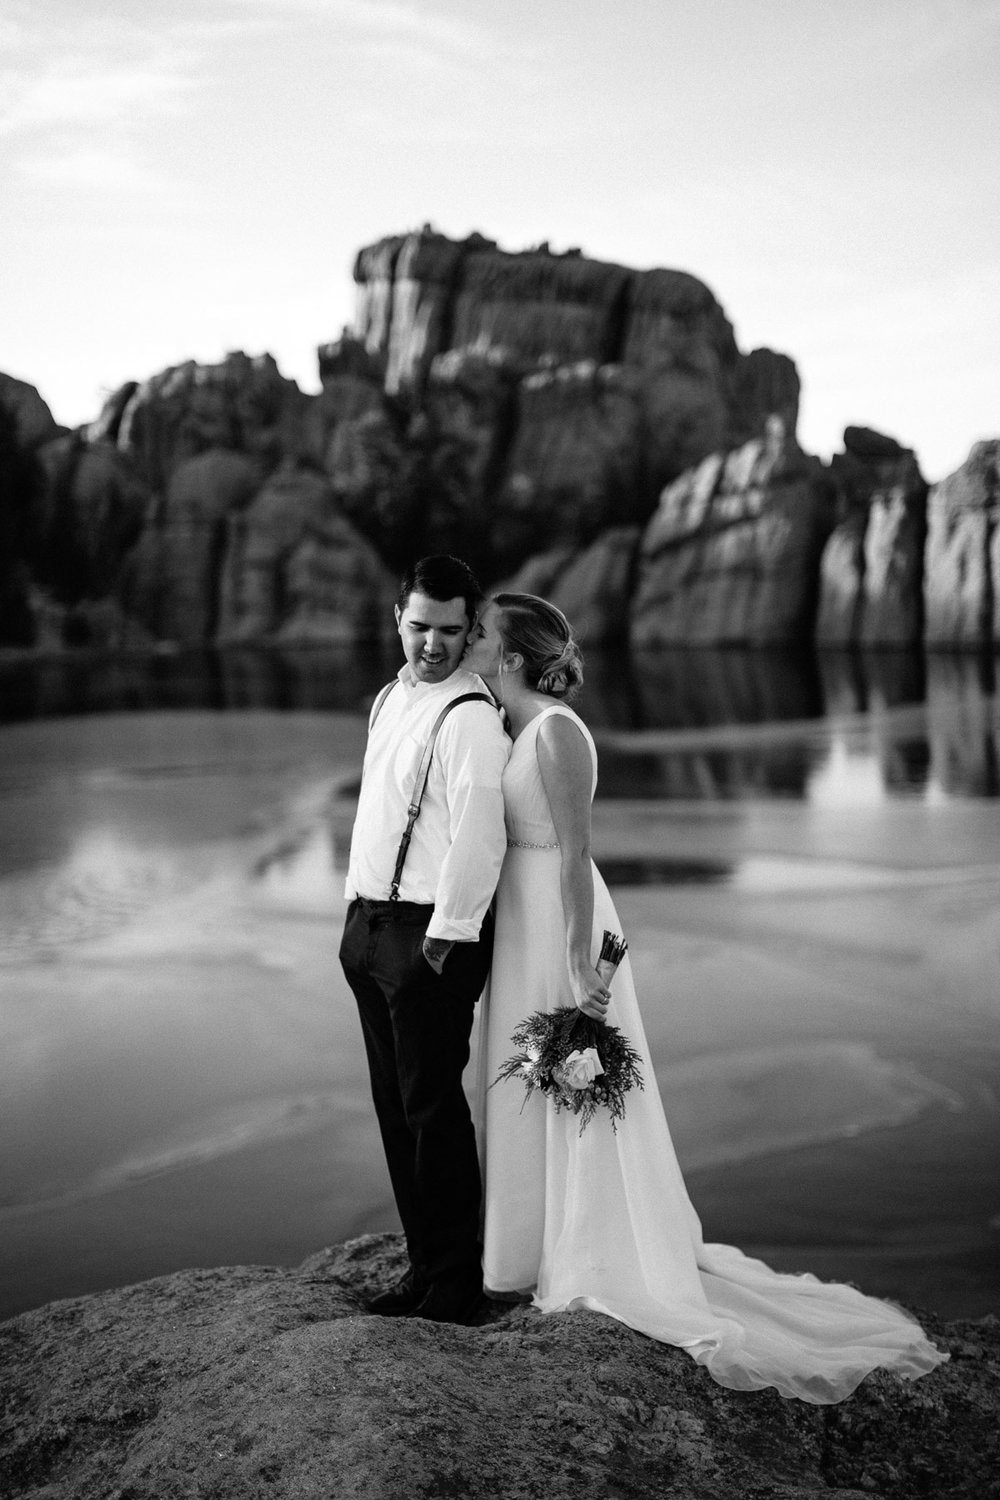 sioux-falls-black-hills-rapid-city-elopement-wedding-adventure-photographer-custer-sylvan-lake-34.jpg